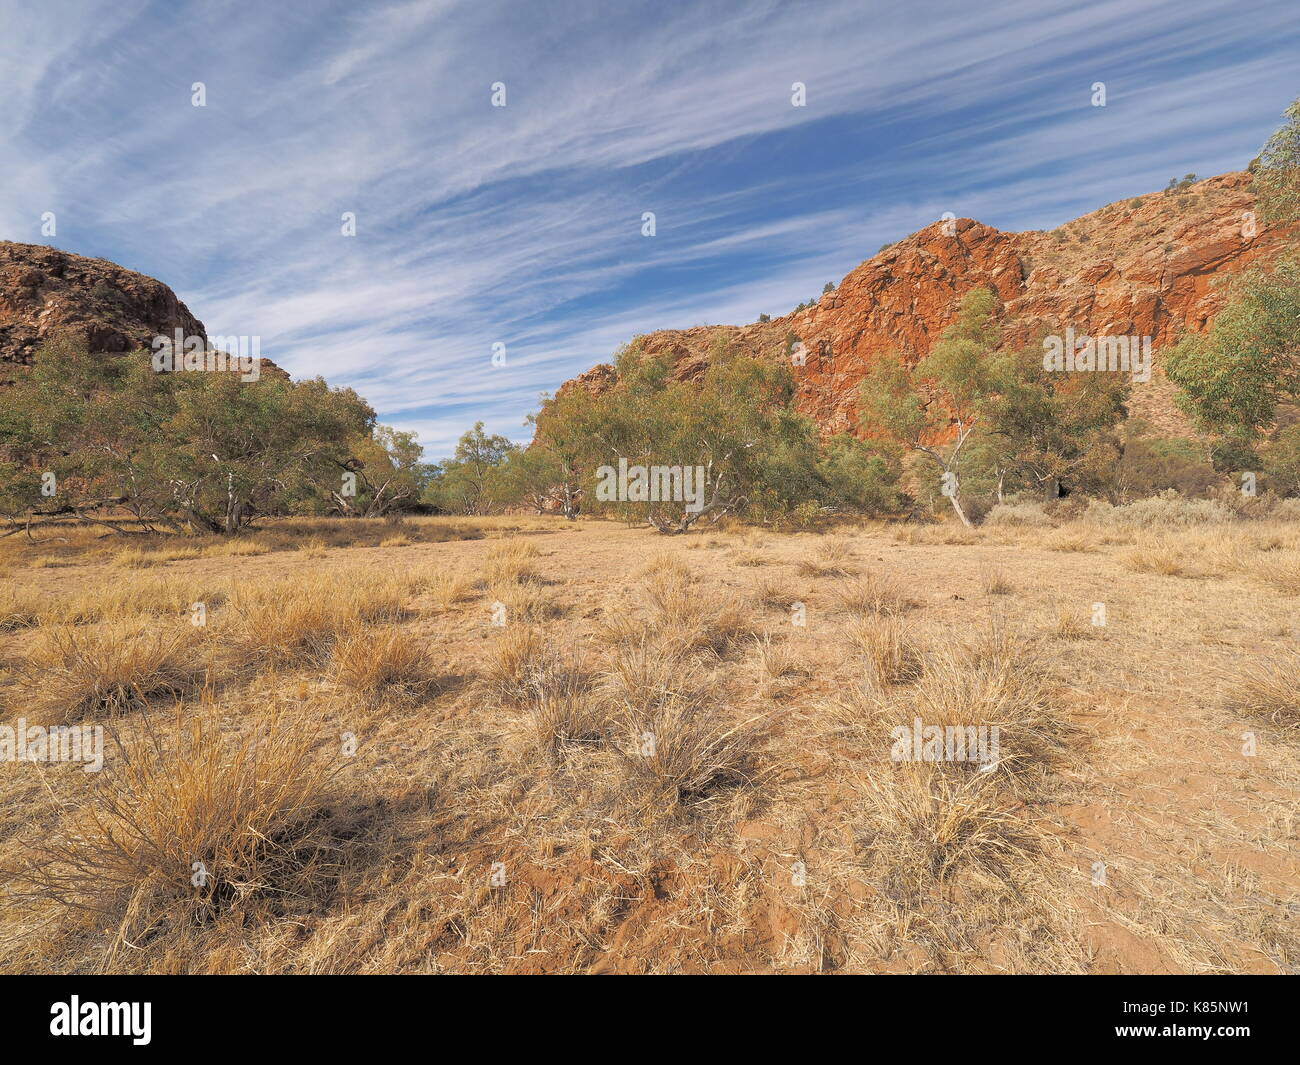 Jessie Gap form the north, MacDonnell ranges, outback Alice Springs, Australia 2017 - Stock Image